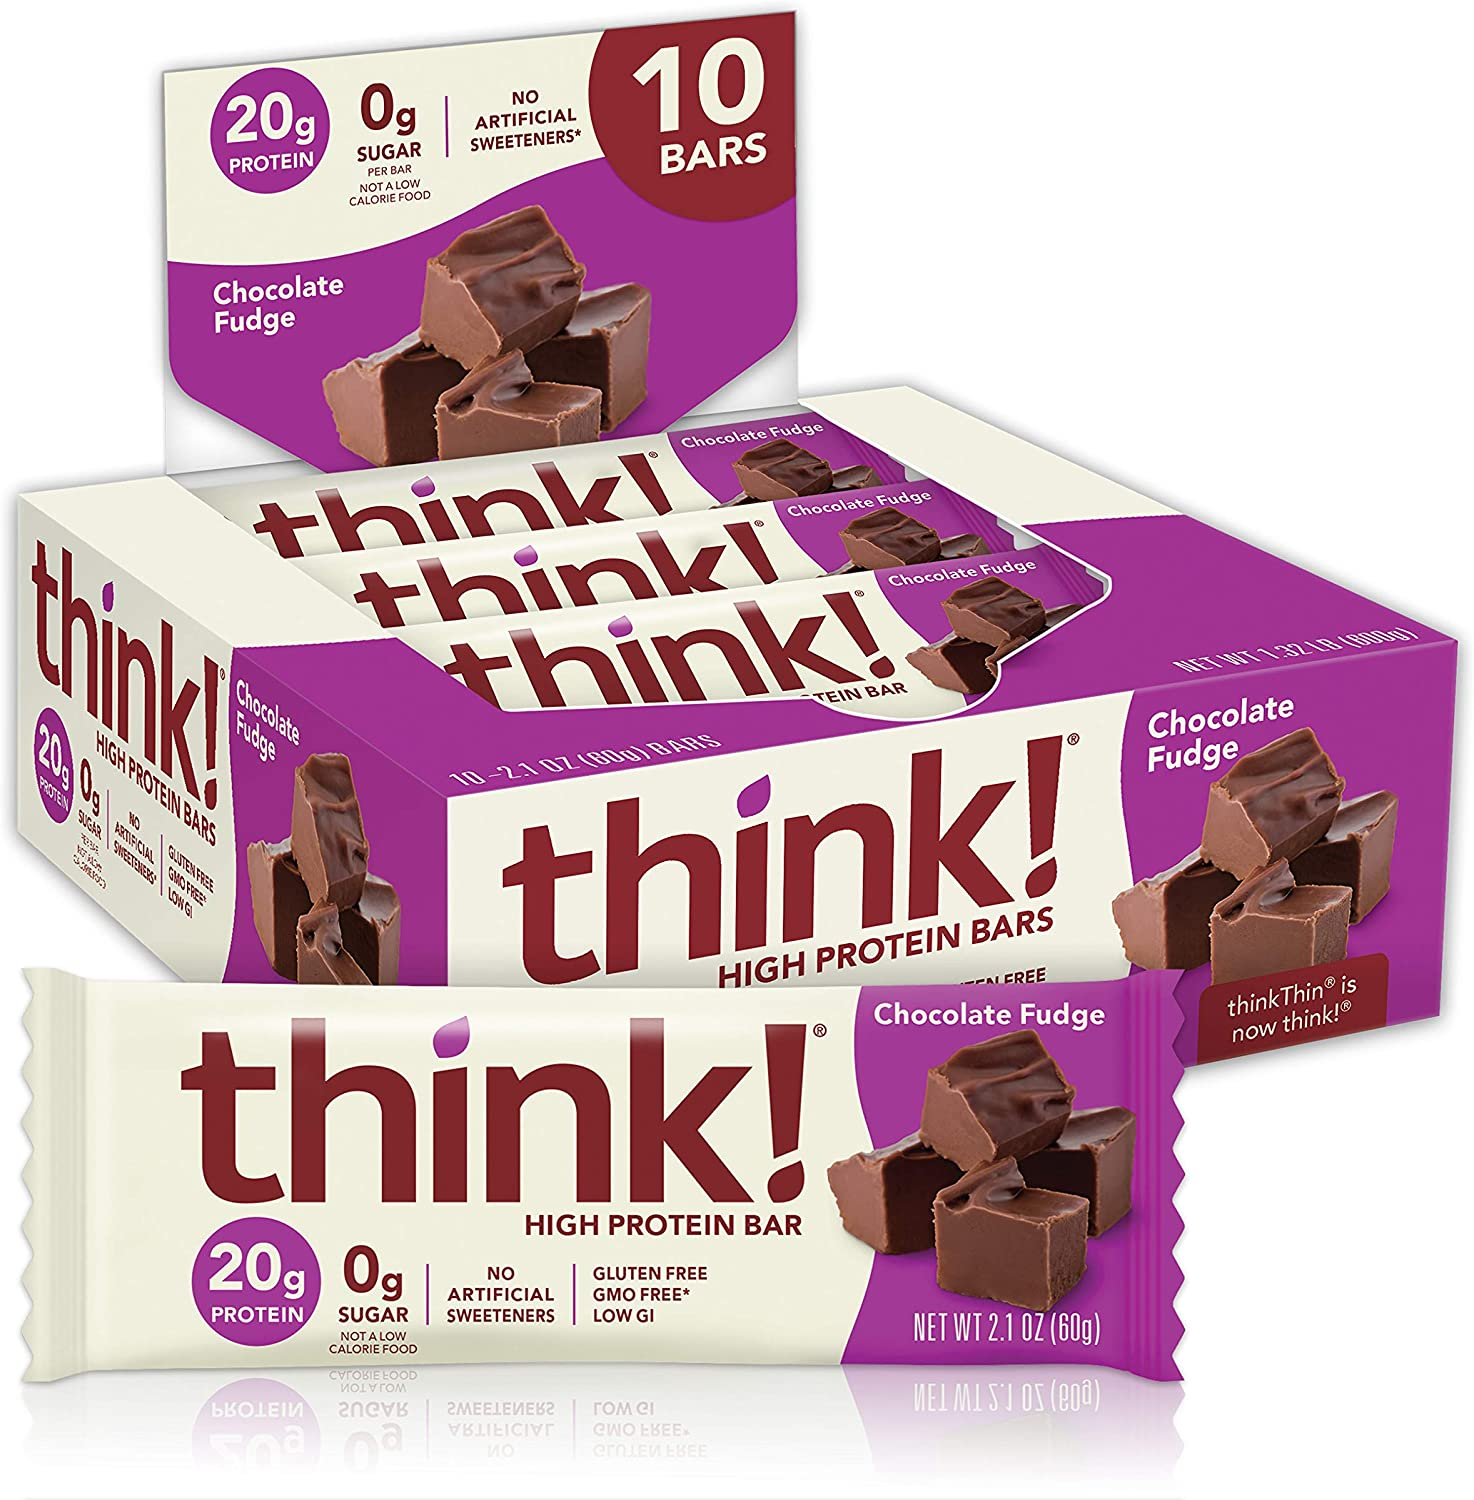 think! (thinkThin) High Protein Bars - Chocolate Fudge, 20g Protein, 0g Sugar, No Artificial Sweeteners, Gluten Free, GMO Free, 2.1 oz bar (10 Count - packaging may vary)